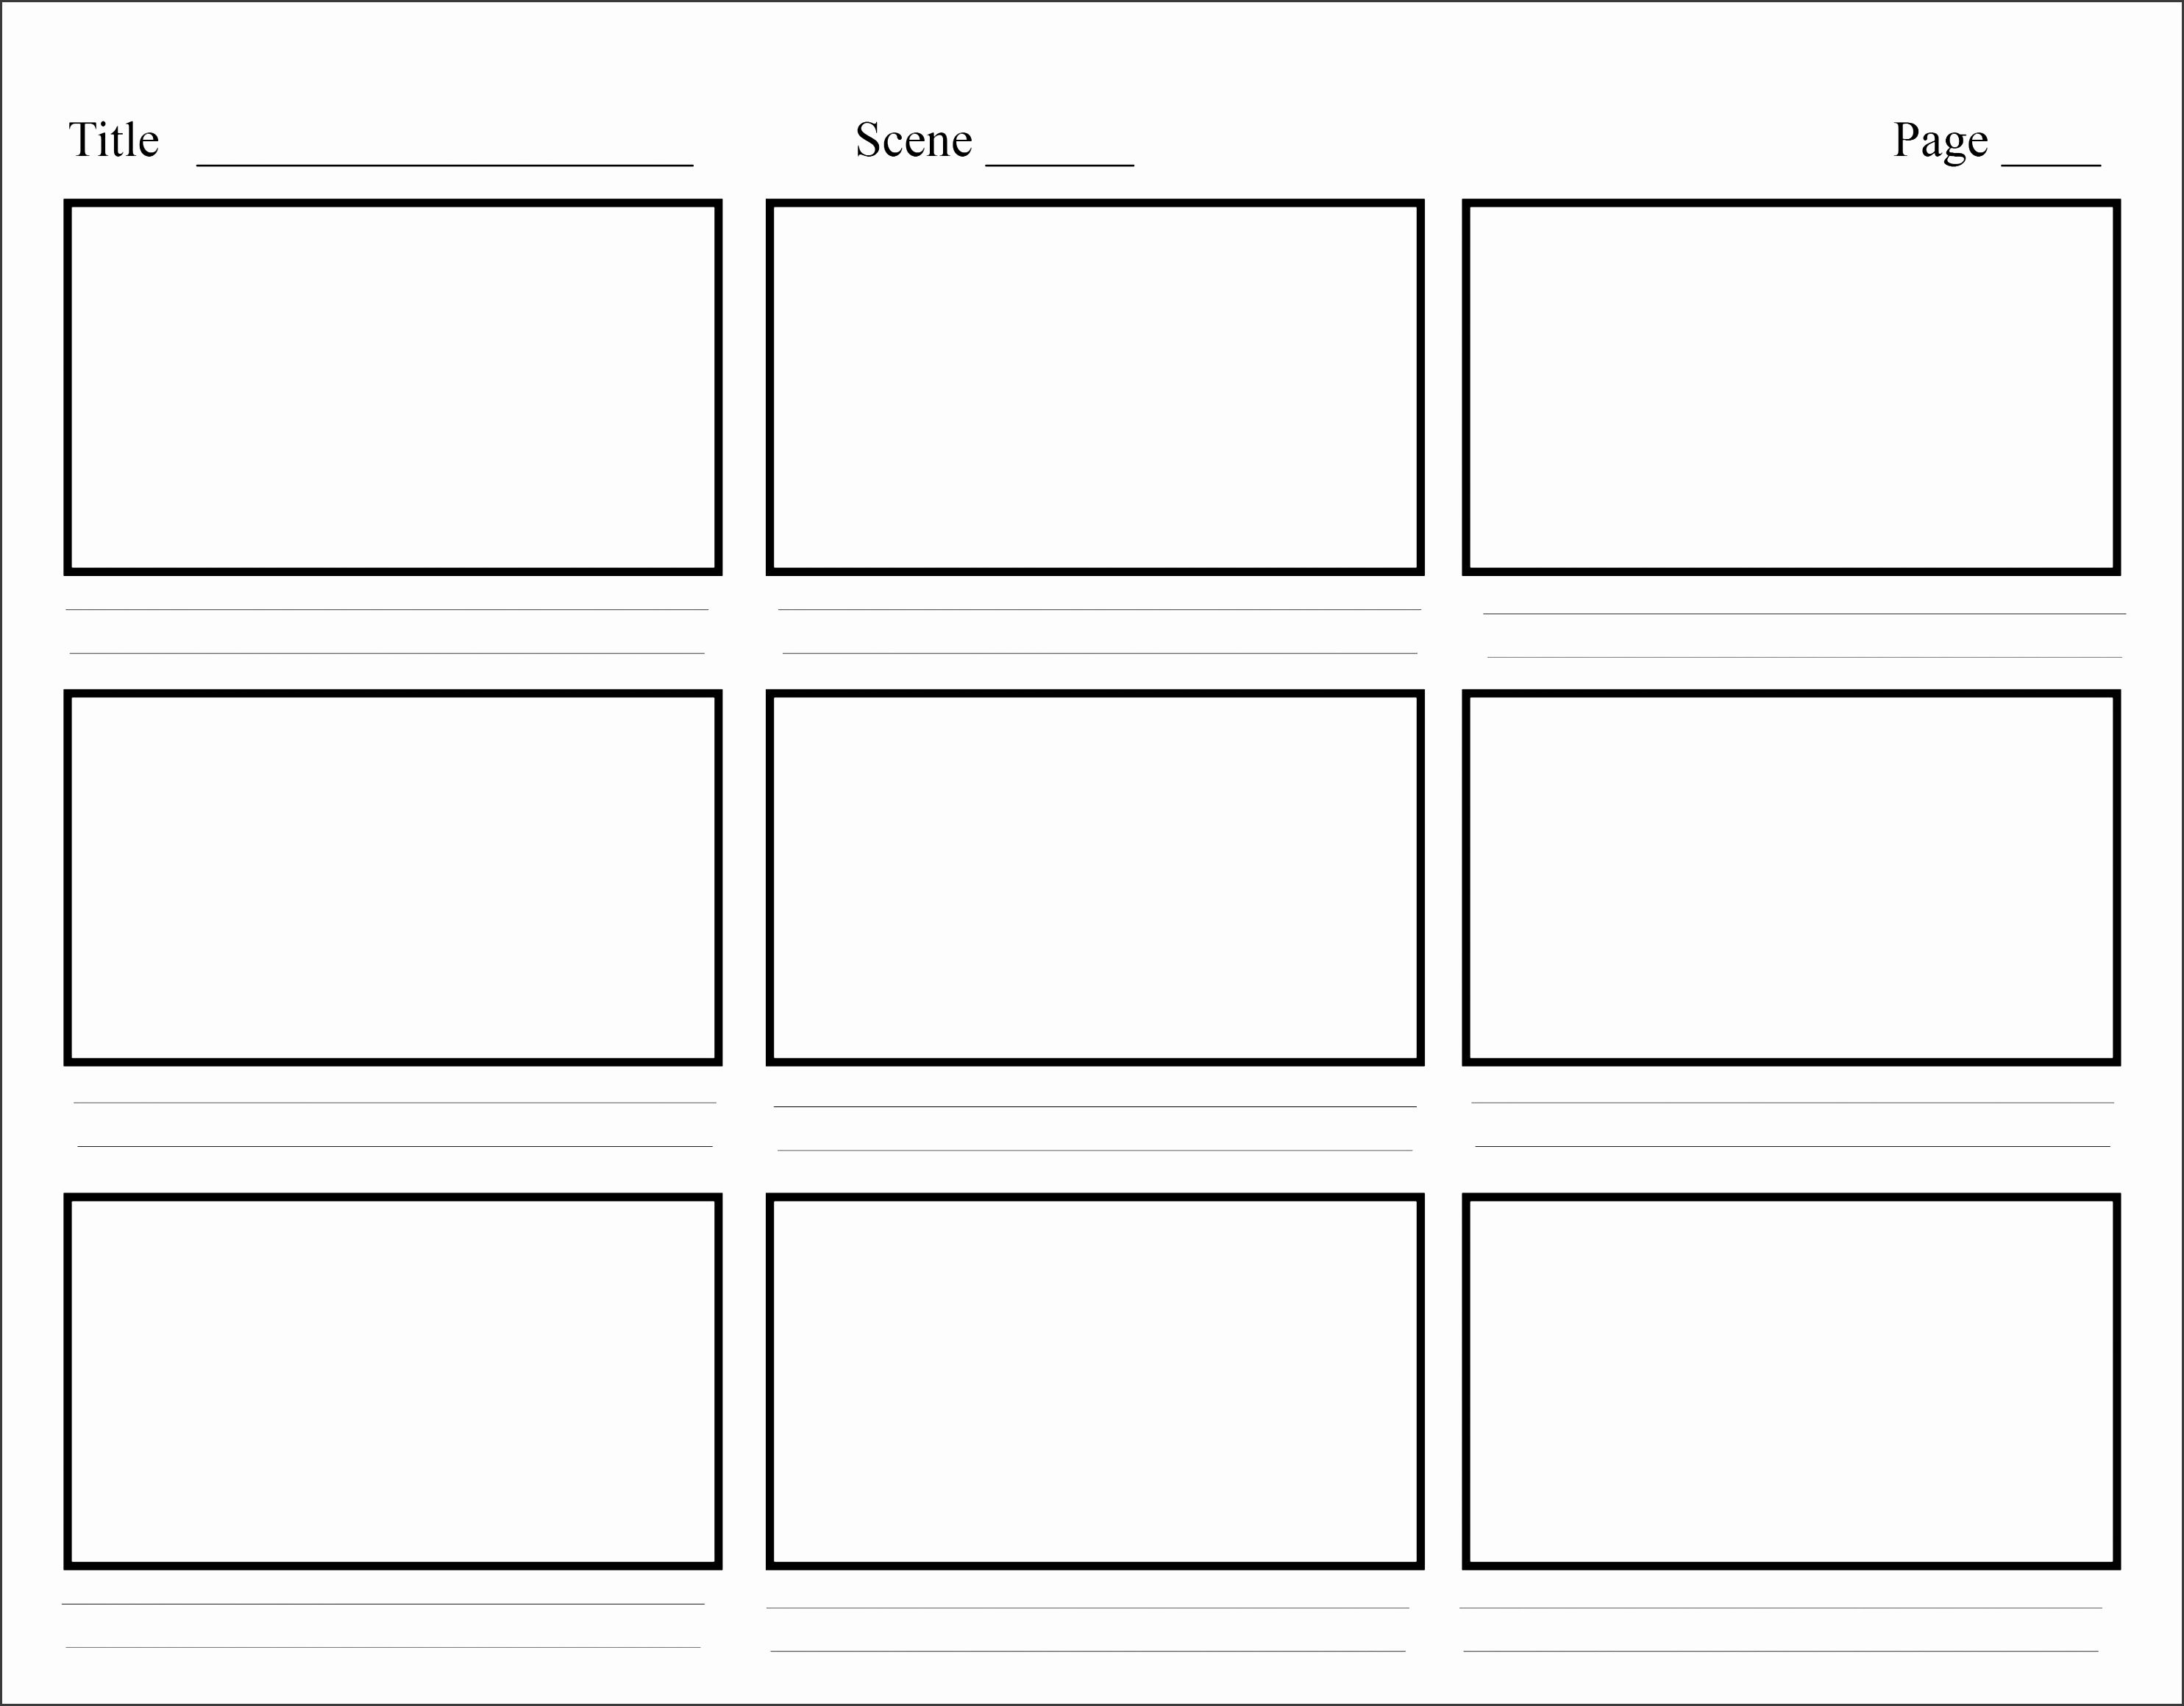 Storyboard Template Storyboard Template Character Design Tips